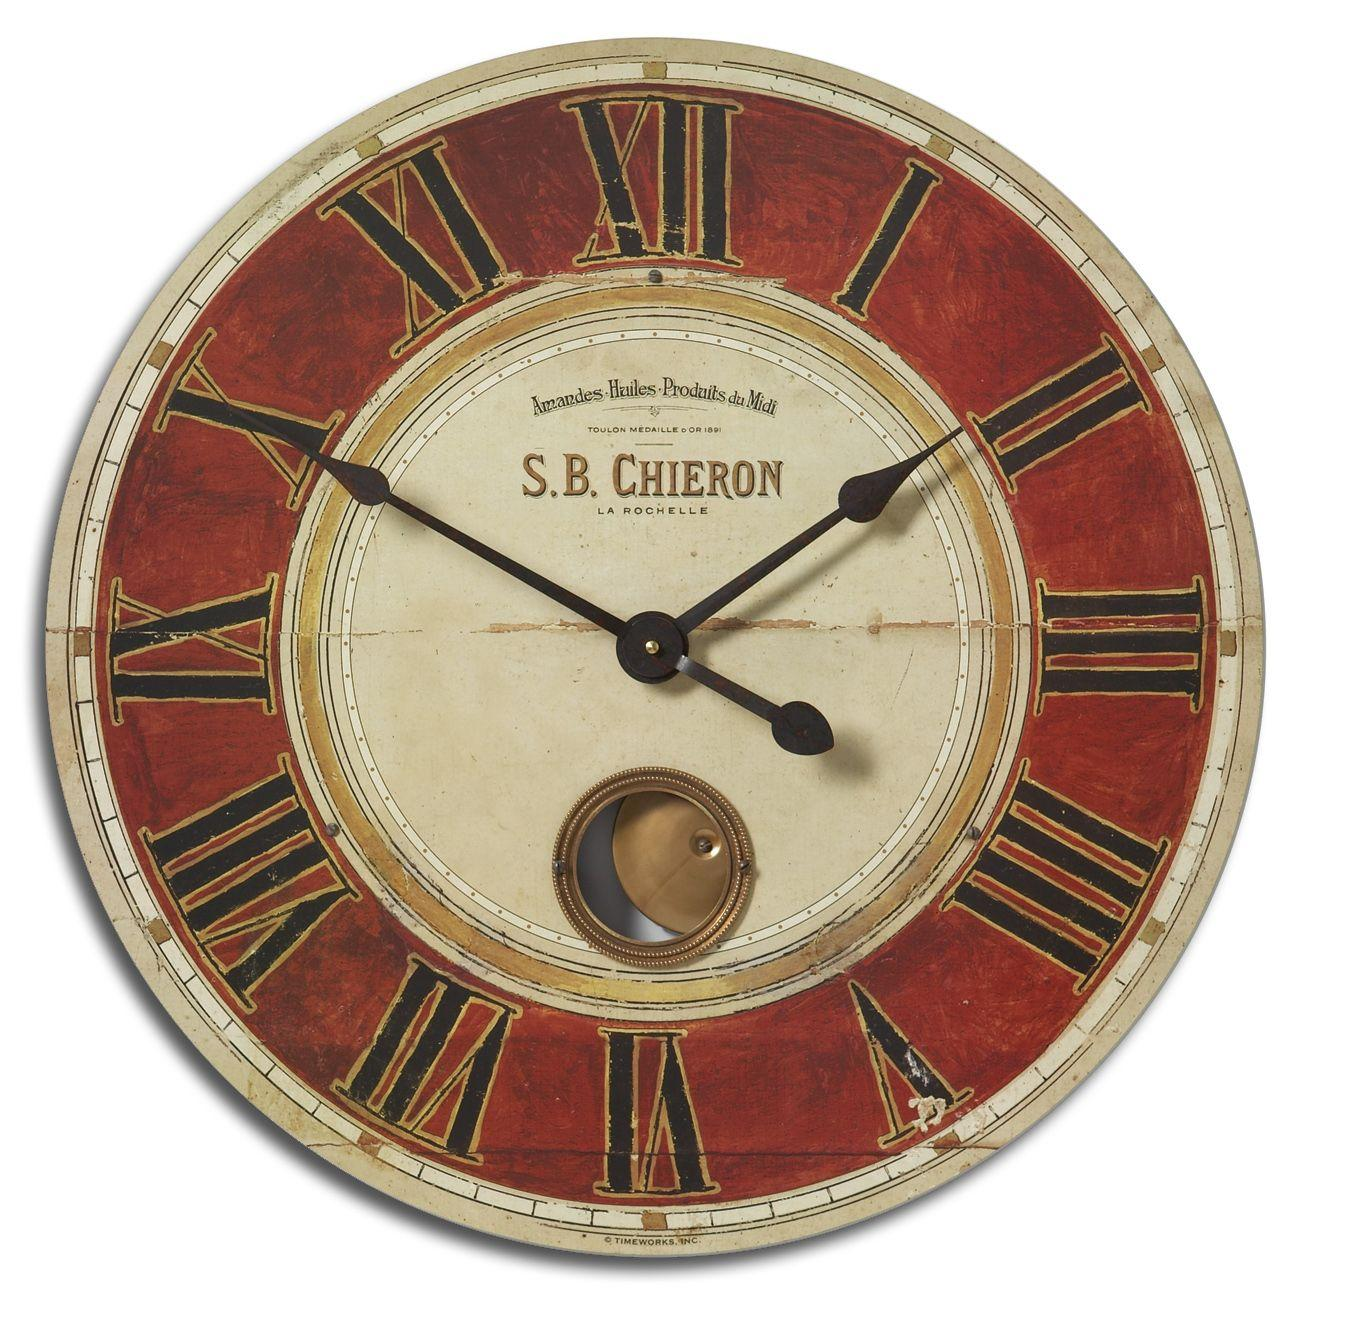 "Uttermost Clocks S.B. Chieron 23"" Clock - Item Number: 06042"